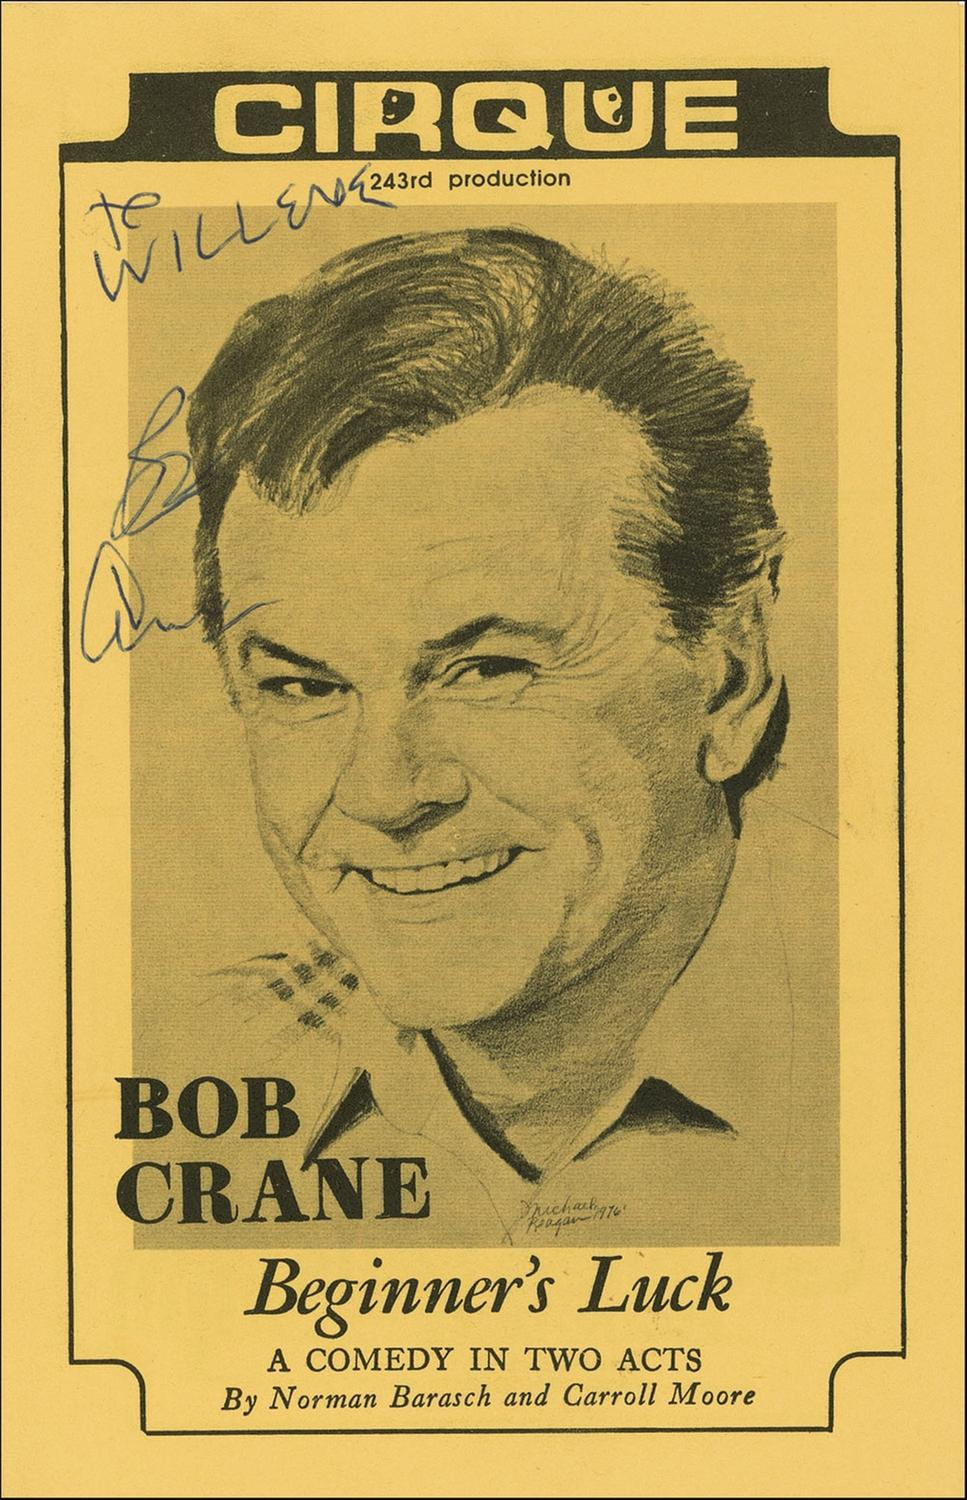 Crane autographed this program during an earlier stop on the tour.